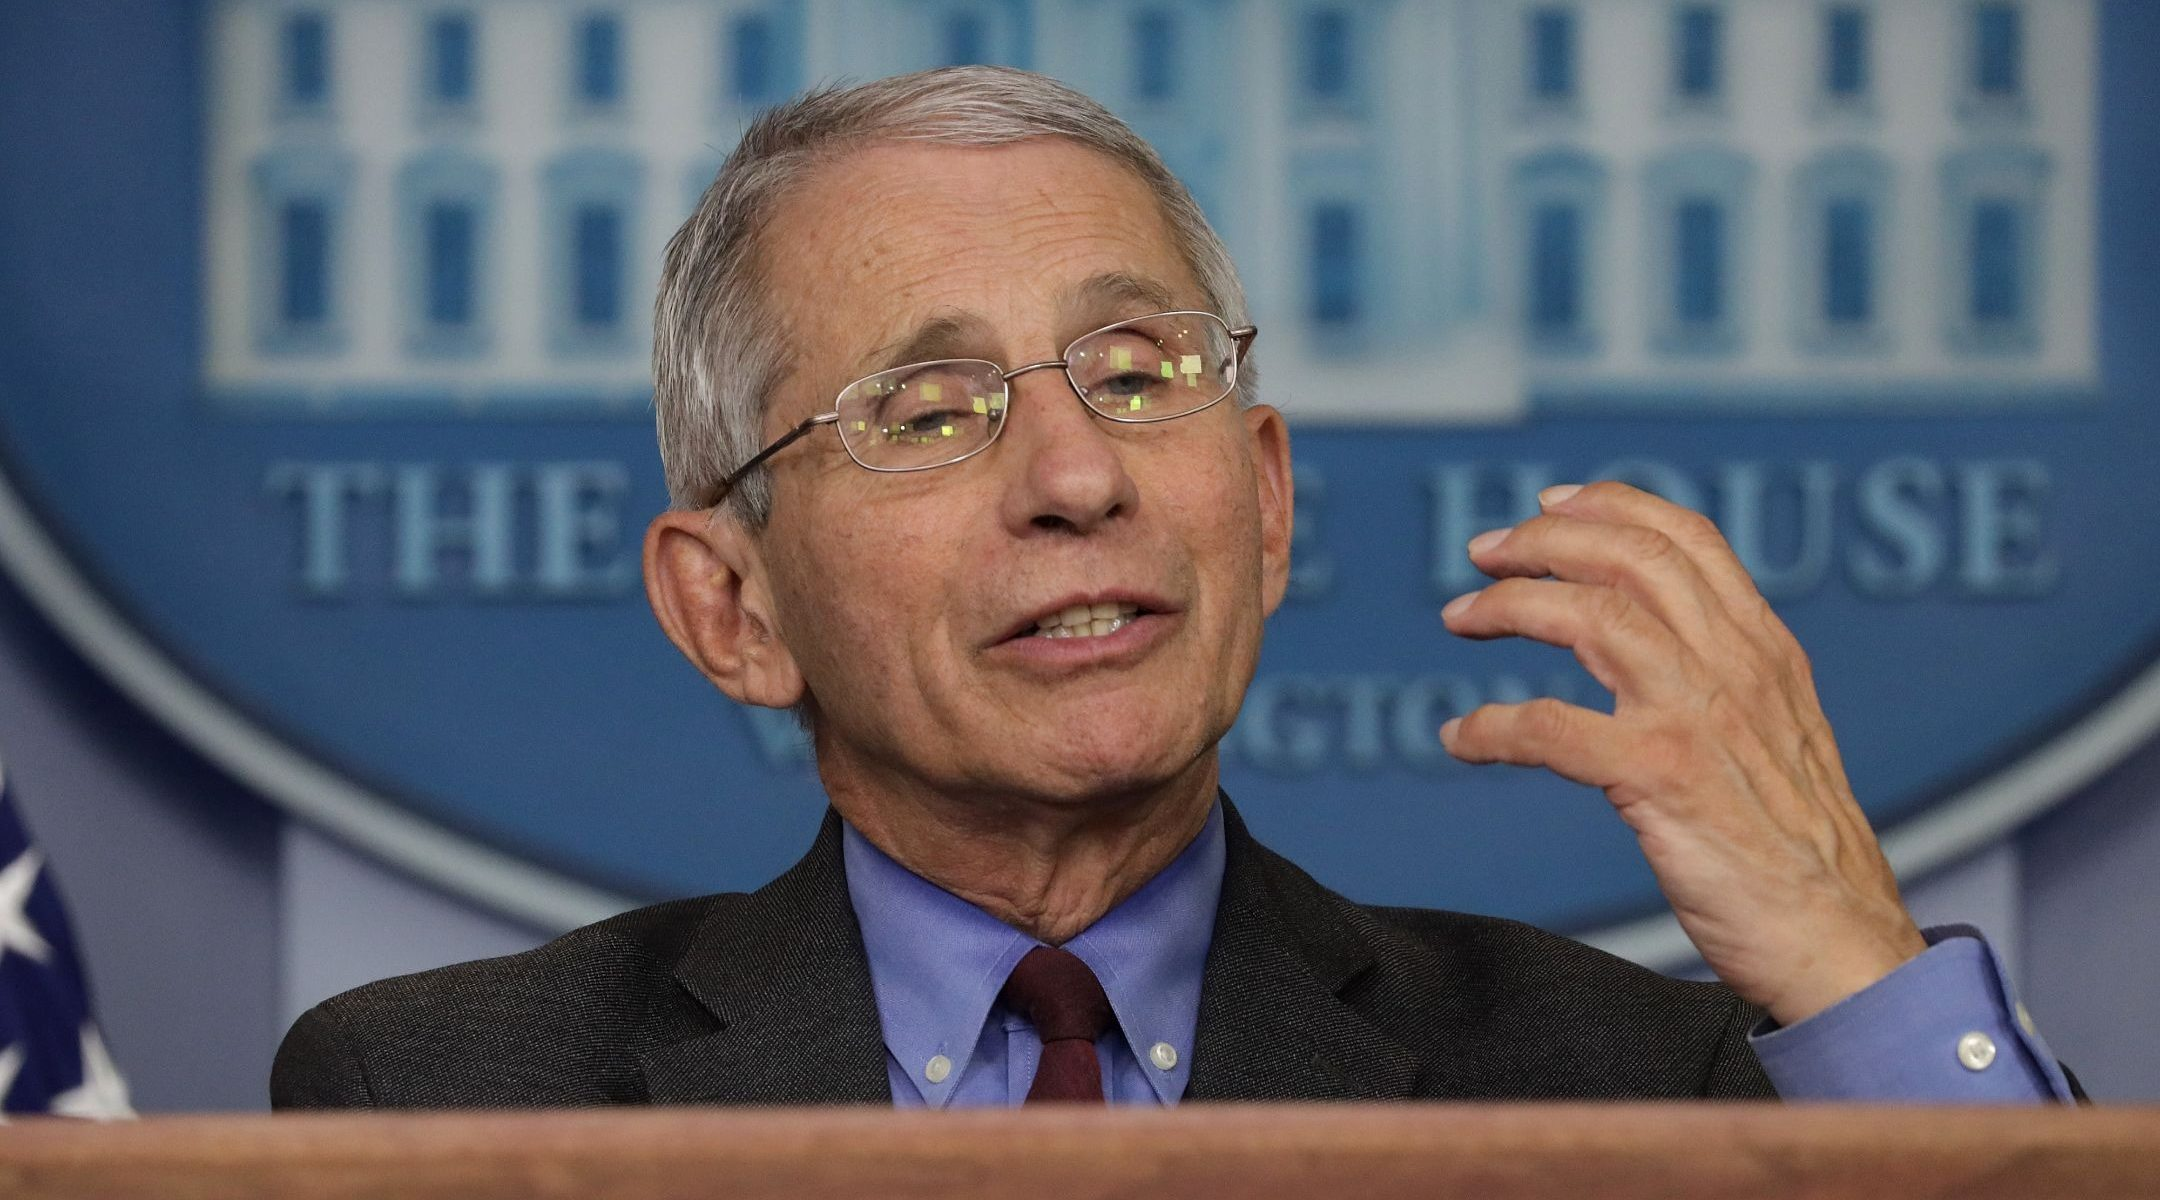 Dr. Anthony Fauci, director of the National Institute of Allergy and Infectious Diseases, speaks at the daily briefing of the White House Coronavirus Task Force at the White House, April 10, 2020. (Alex Wong/Getty Images)